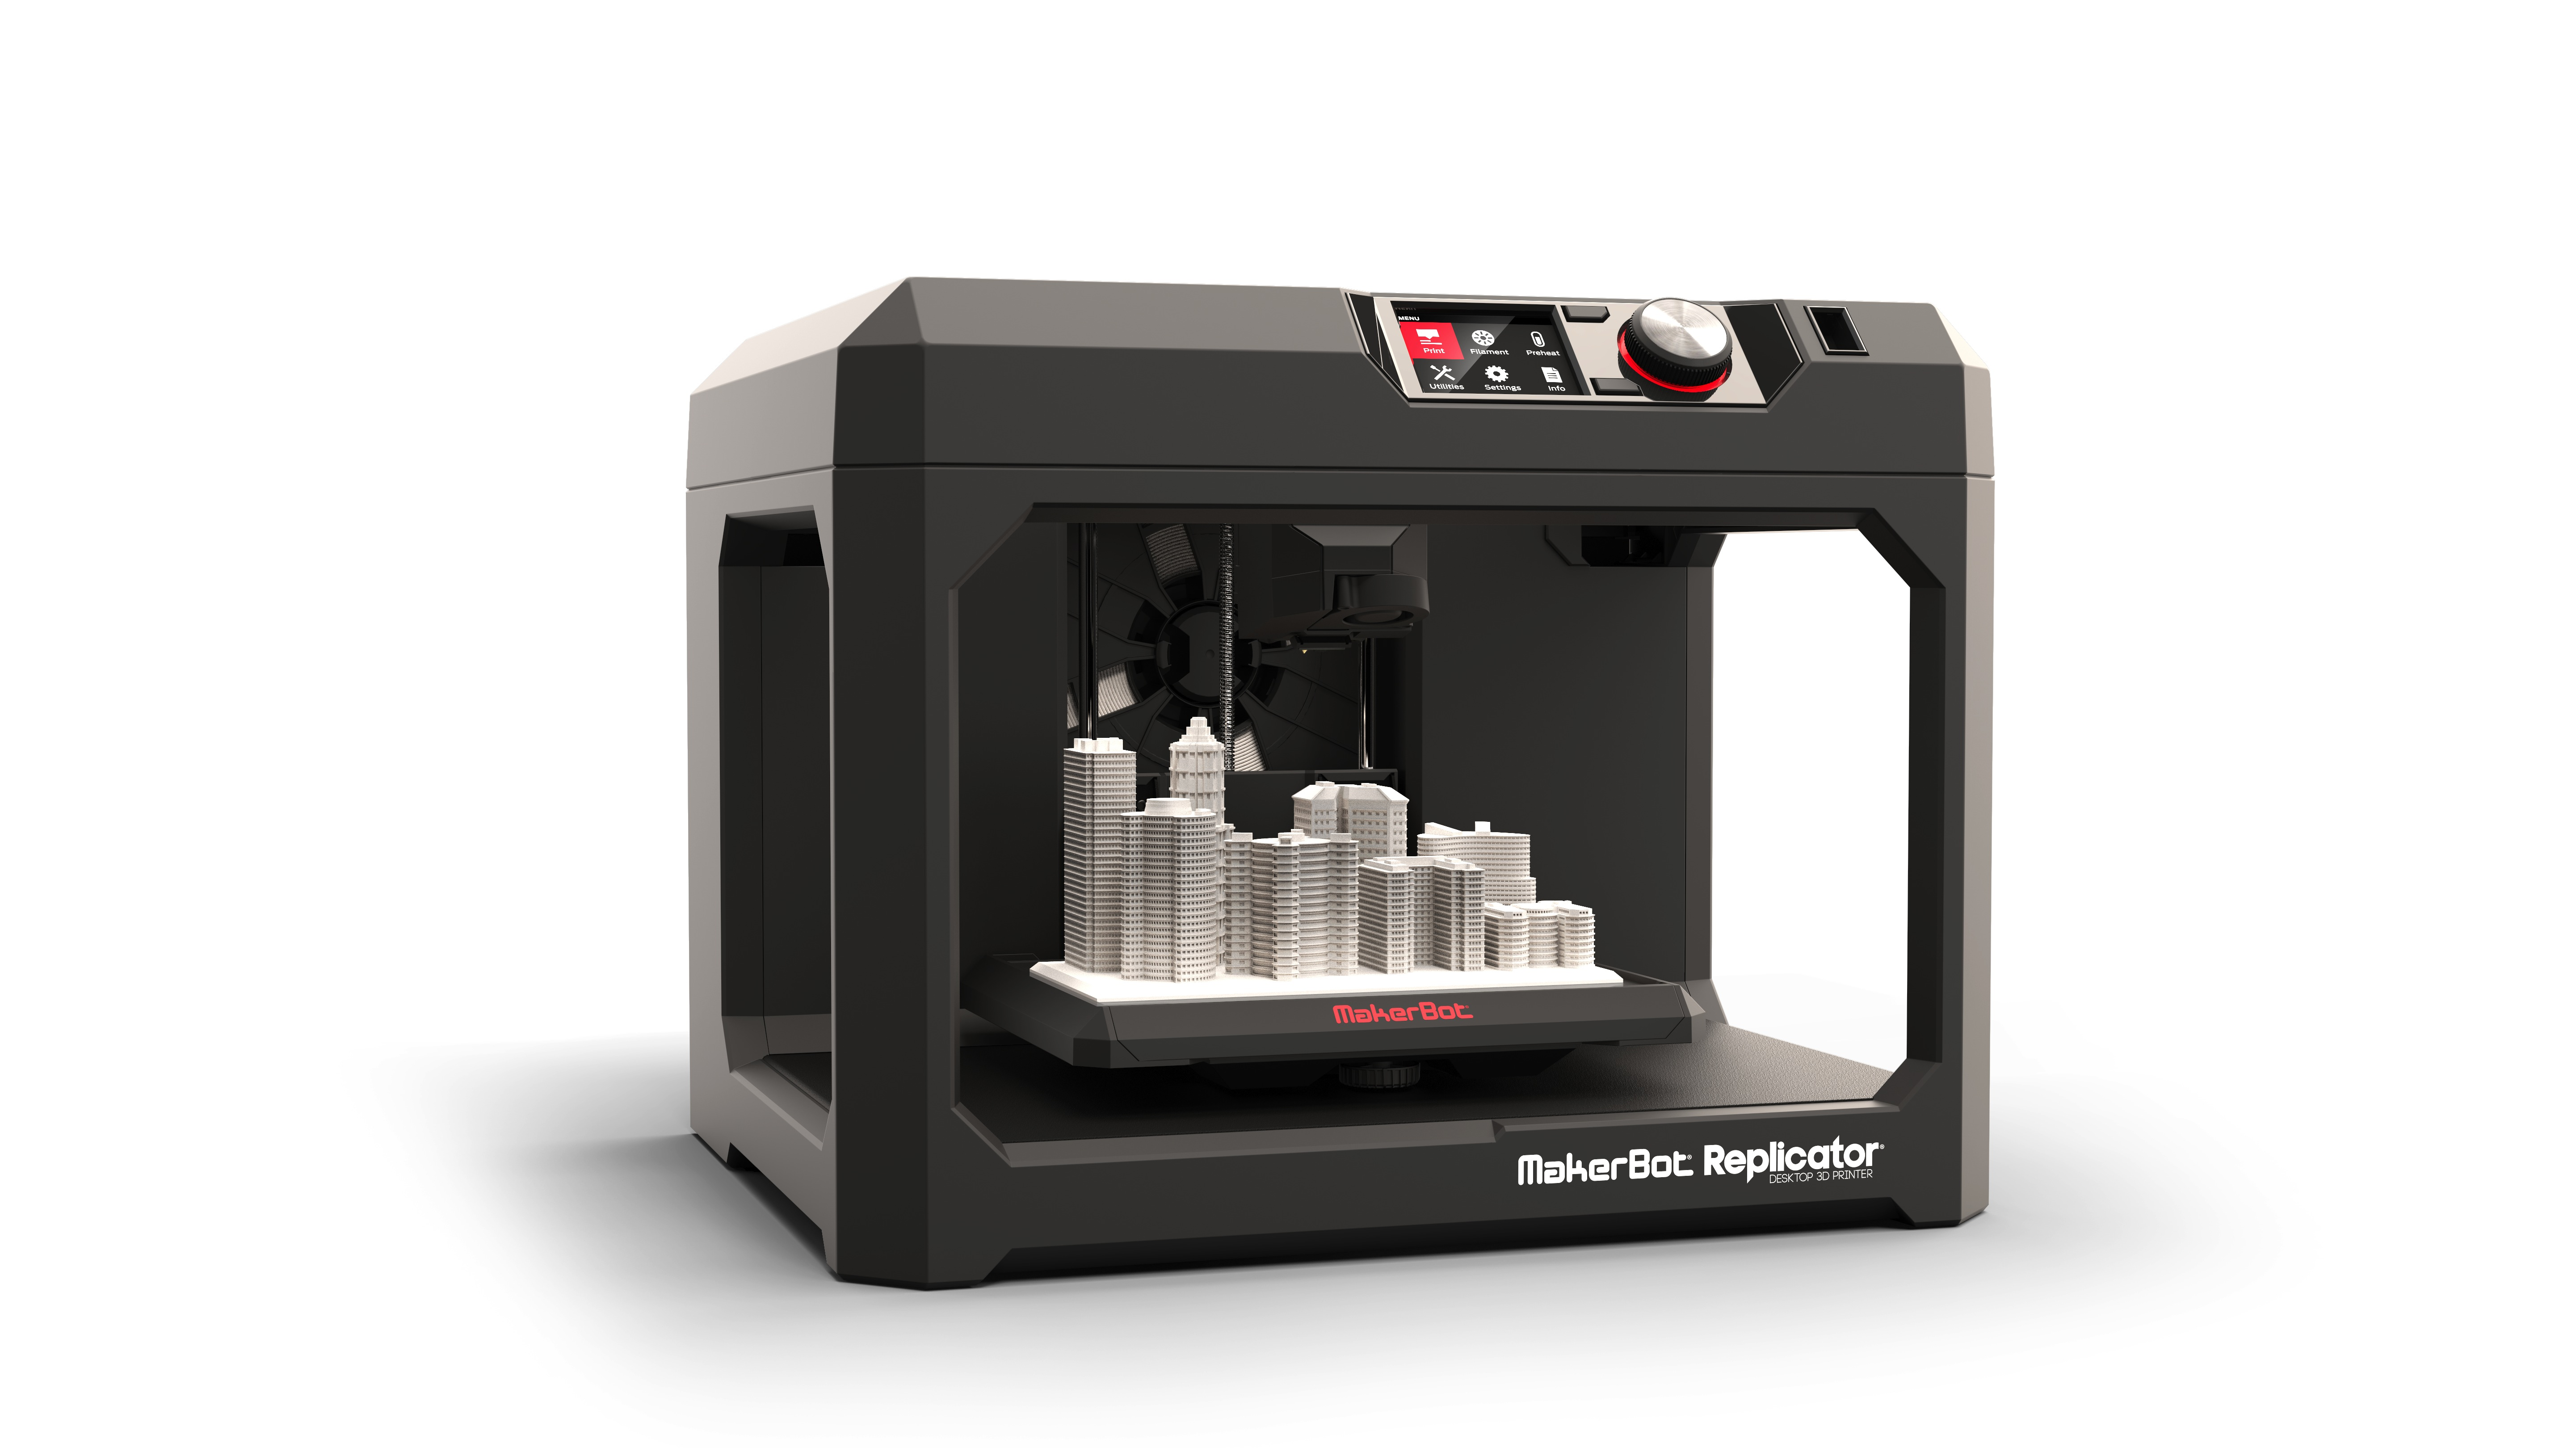 First Impressions: MakerBot Replicator vs. MakerBot Replicator+